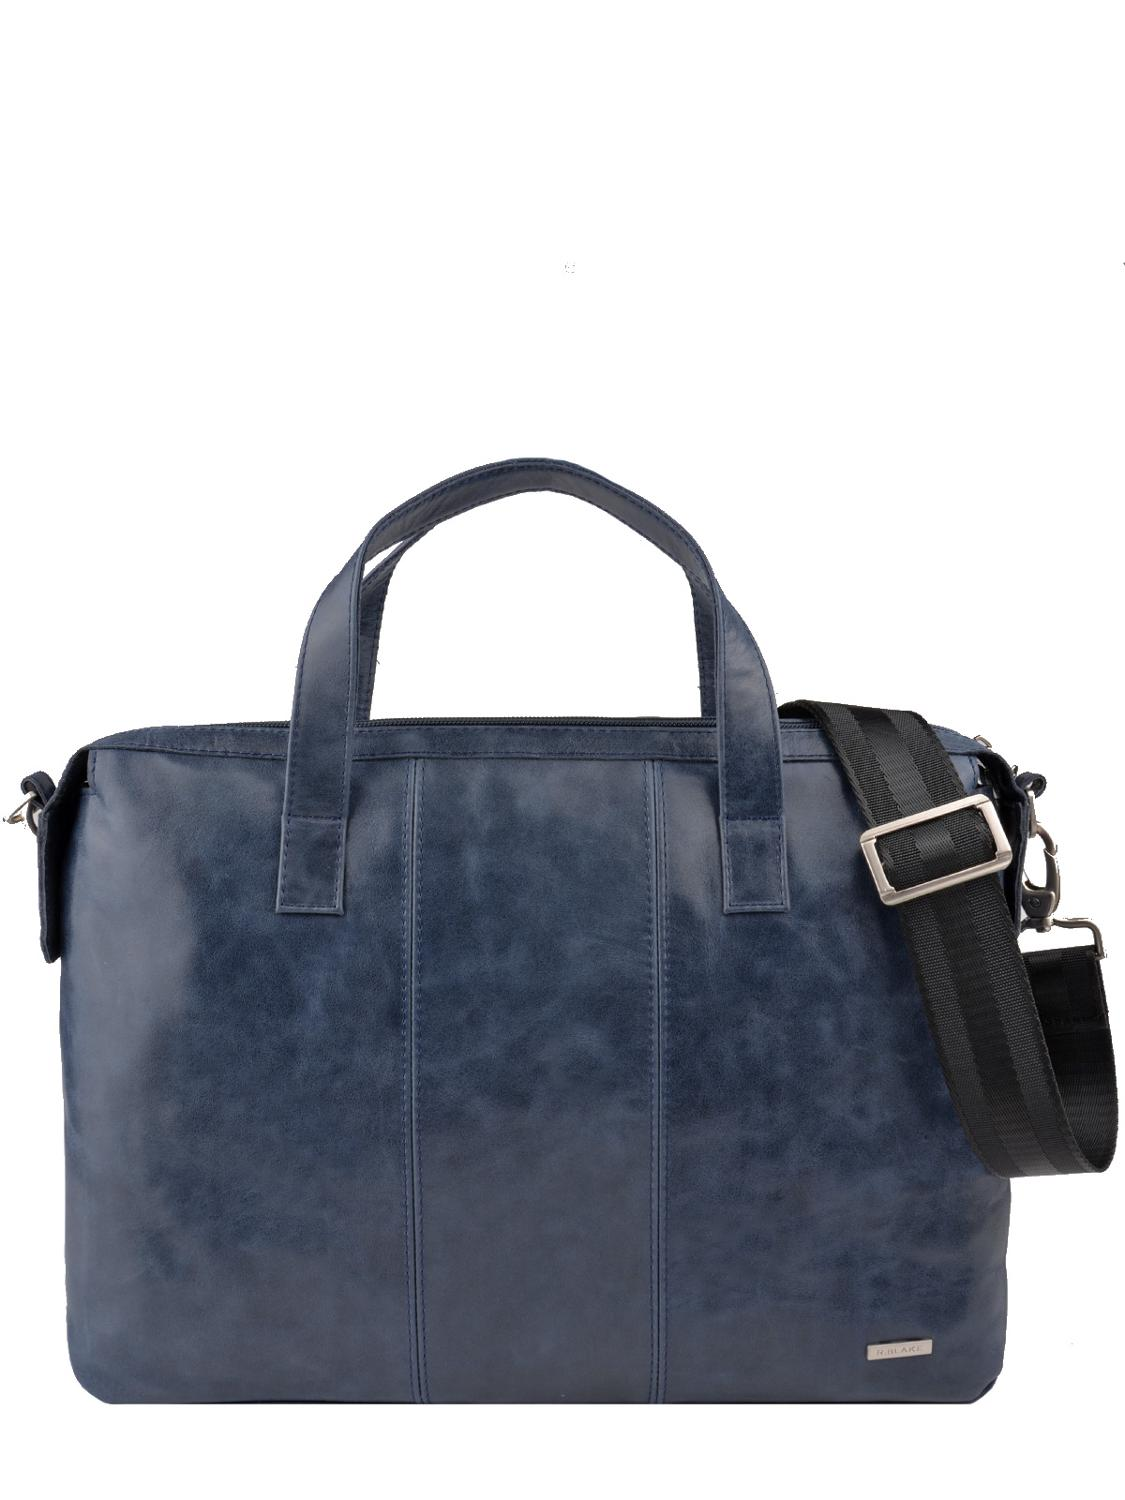 Genuine Leather Bag R. BLAKE DANIEL